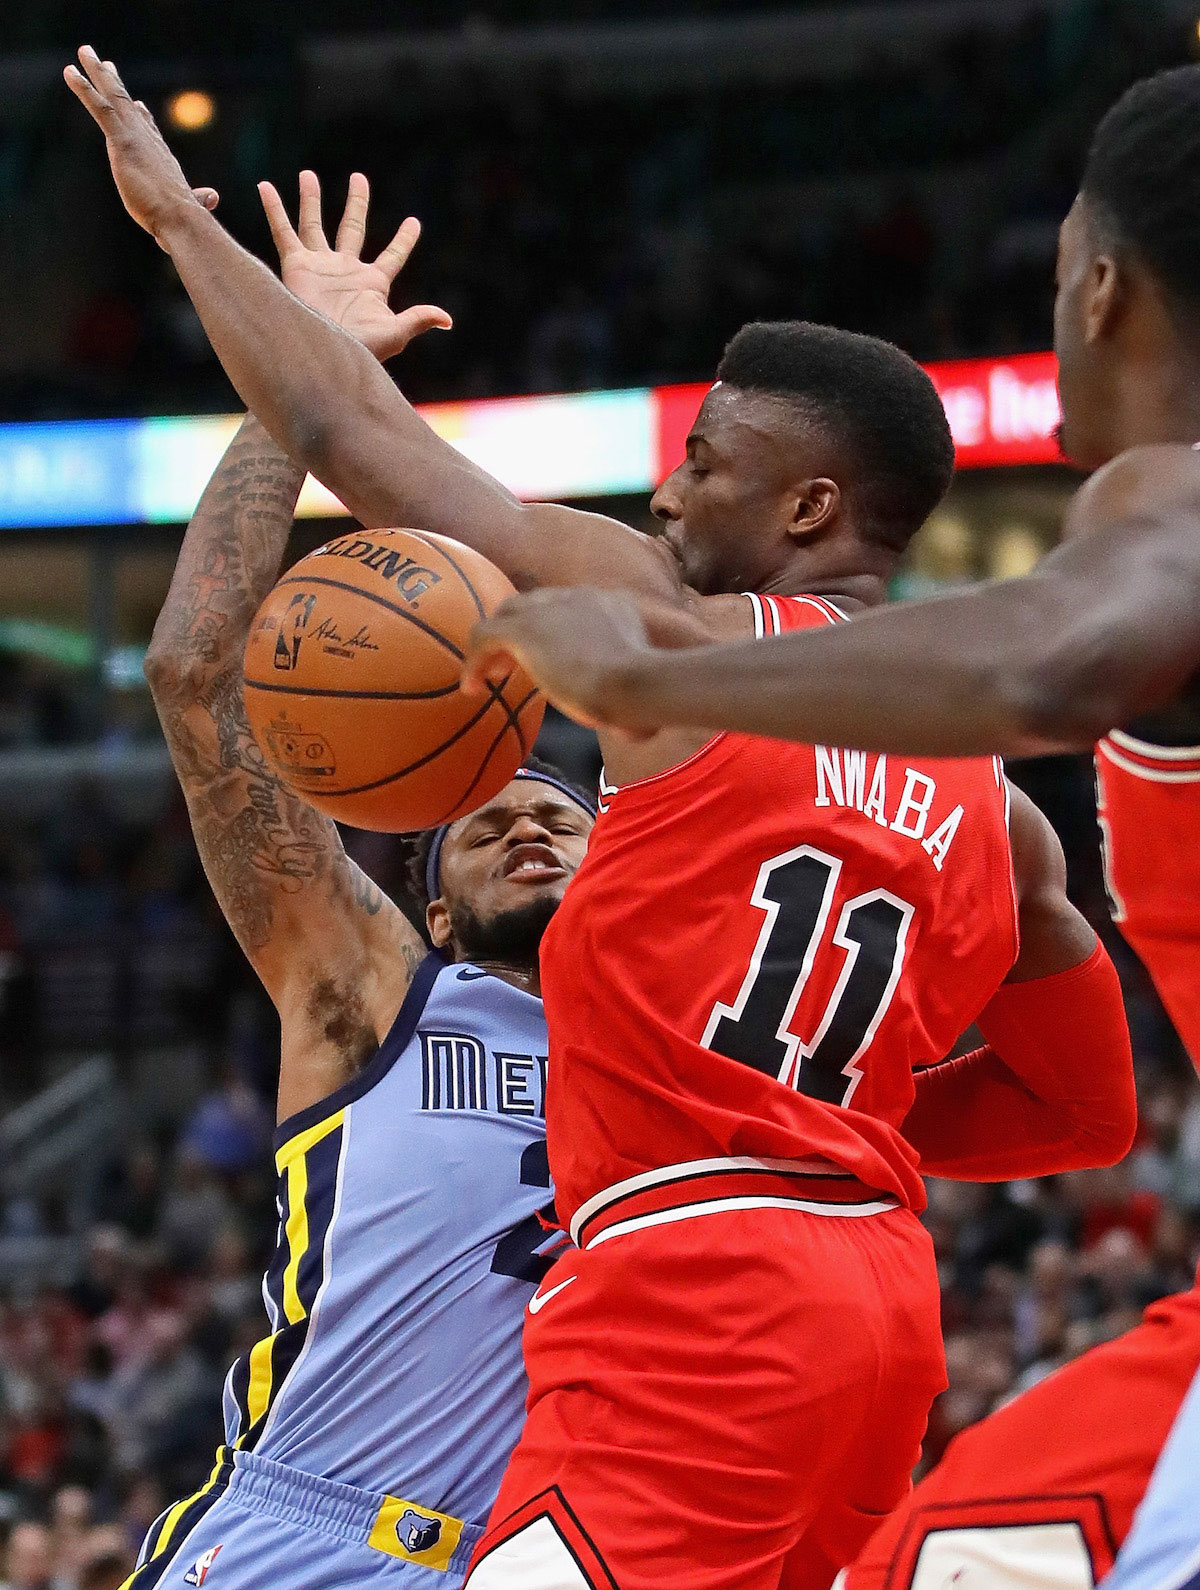 Ben McLemore #23 of the Memphis Grizzlies looses control of the ball under pressure from David Nwaba #11 of the Chicago Bulls